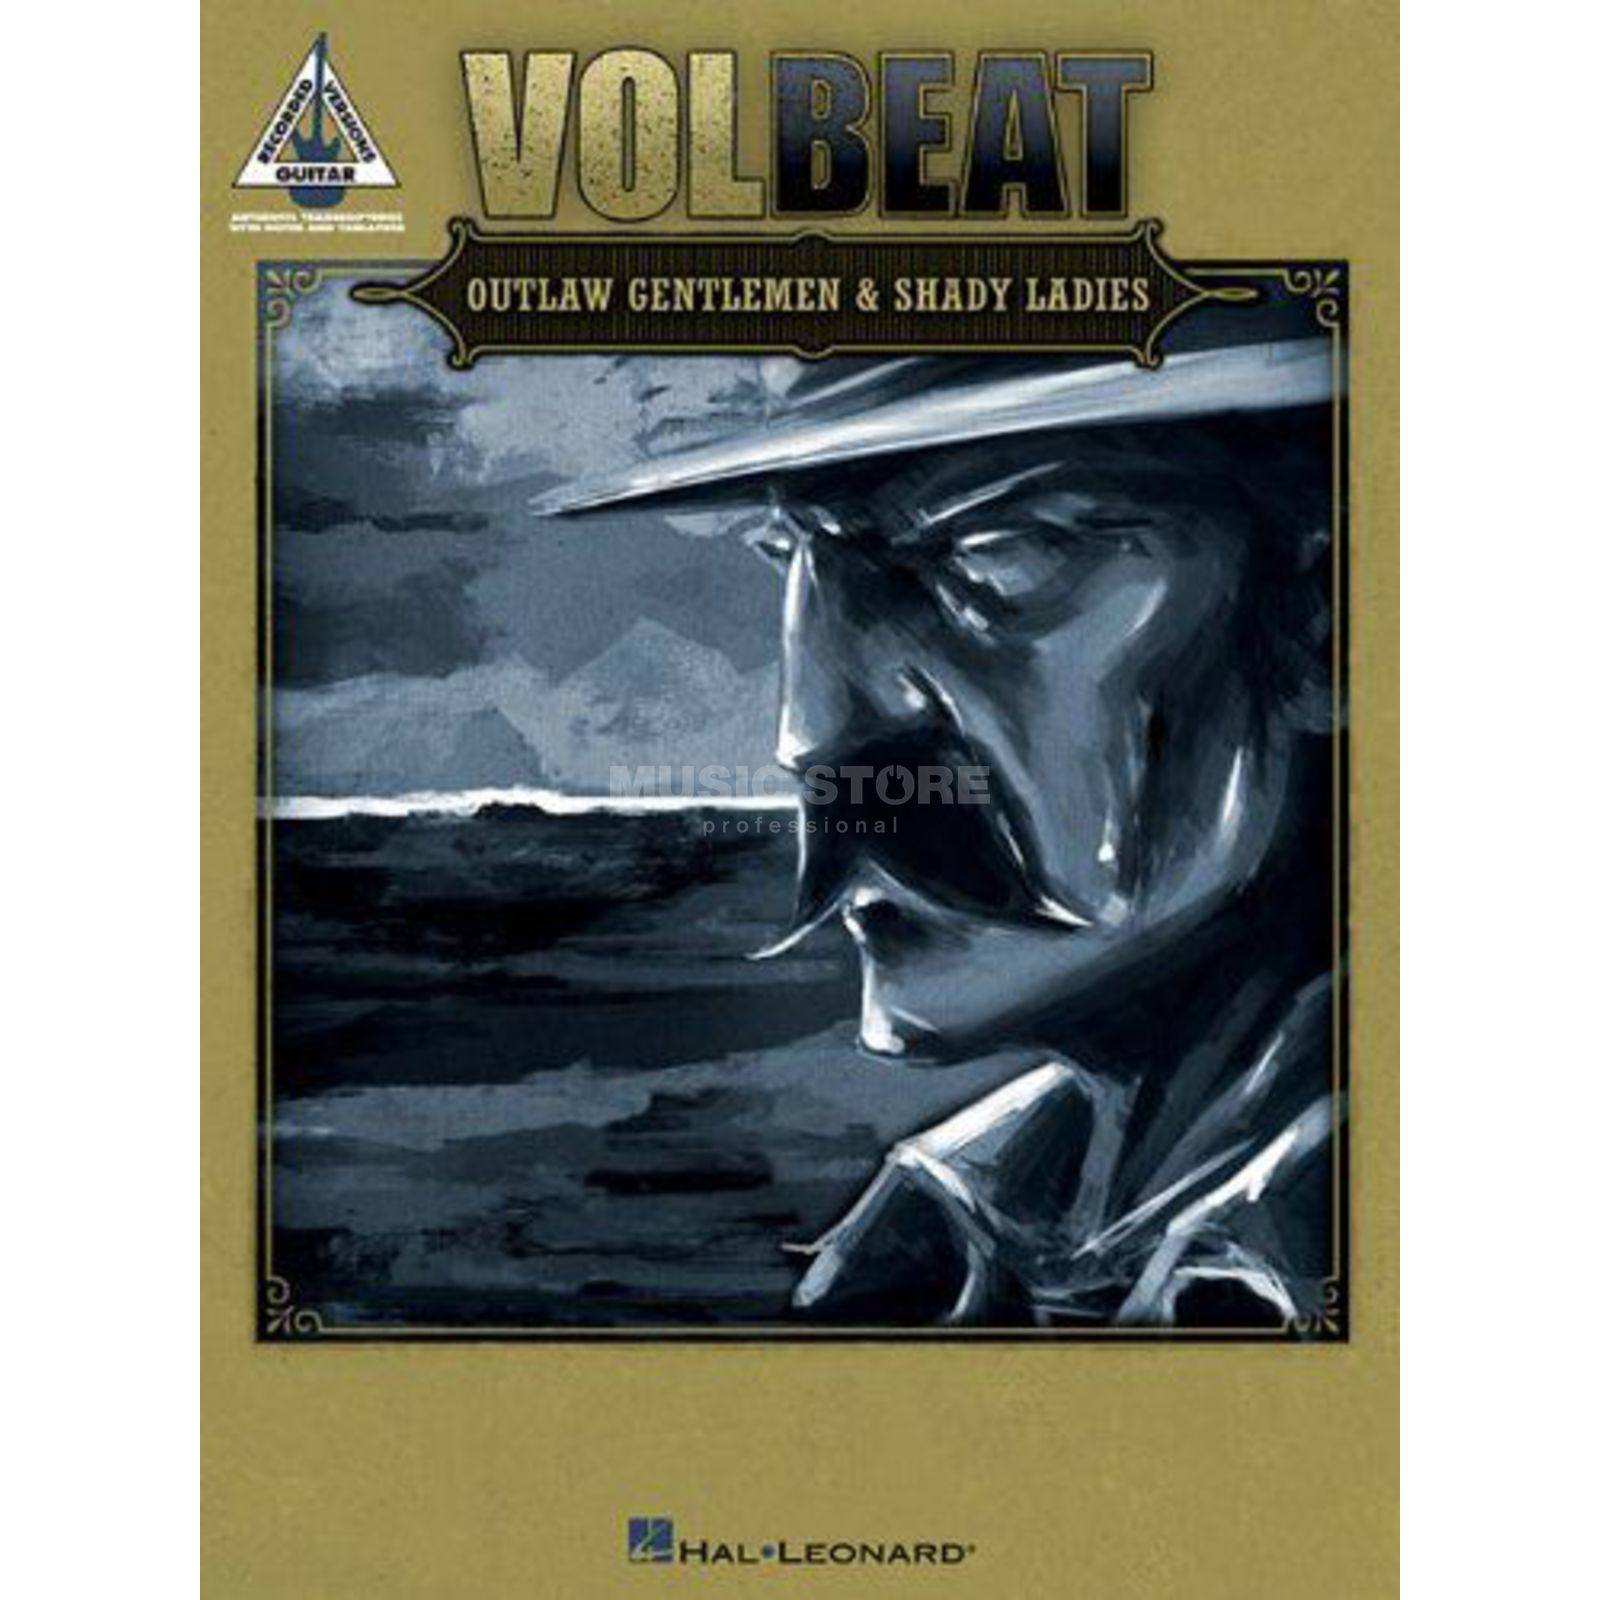 Hal Leonard Volbeat: Outlaw Gentlemen & Shady Ladies Produktbild